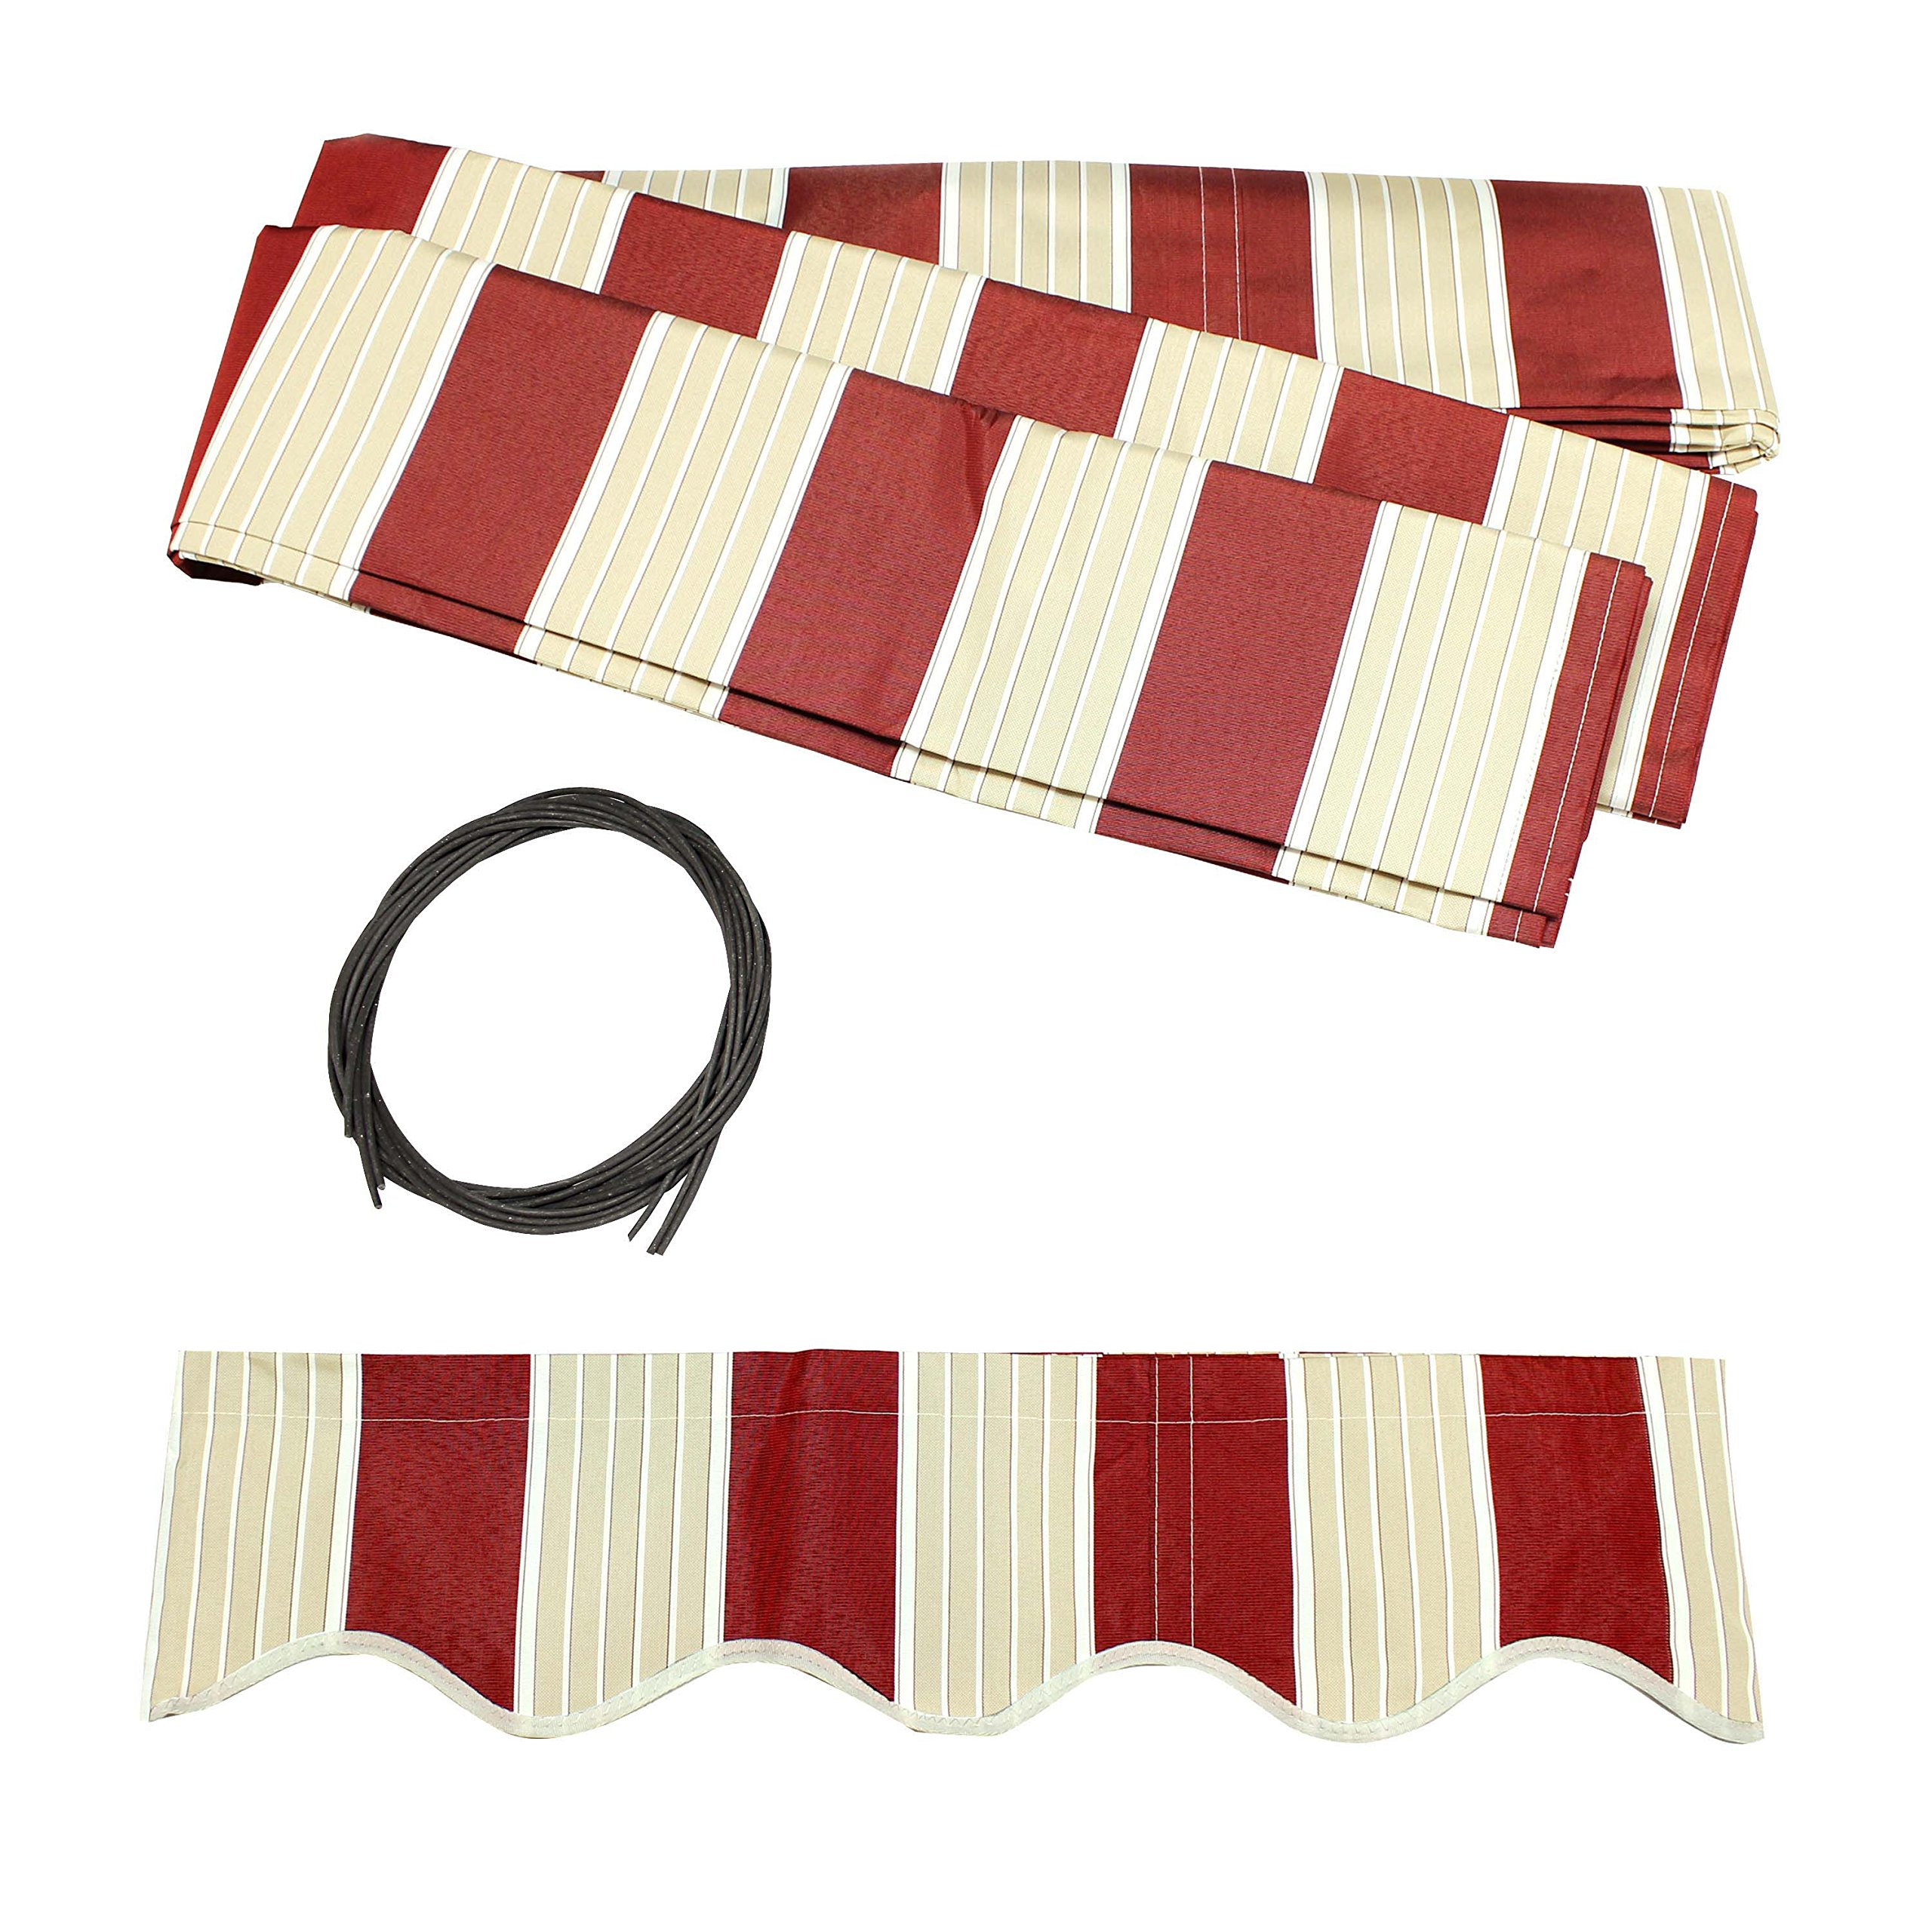 ALEKO FAB10X8MSTRED19 Retractable Awning Fabric Replacement 10 x 8 Feet Multi-Stripe Red